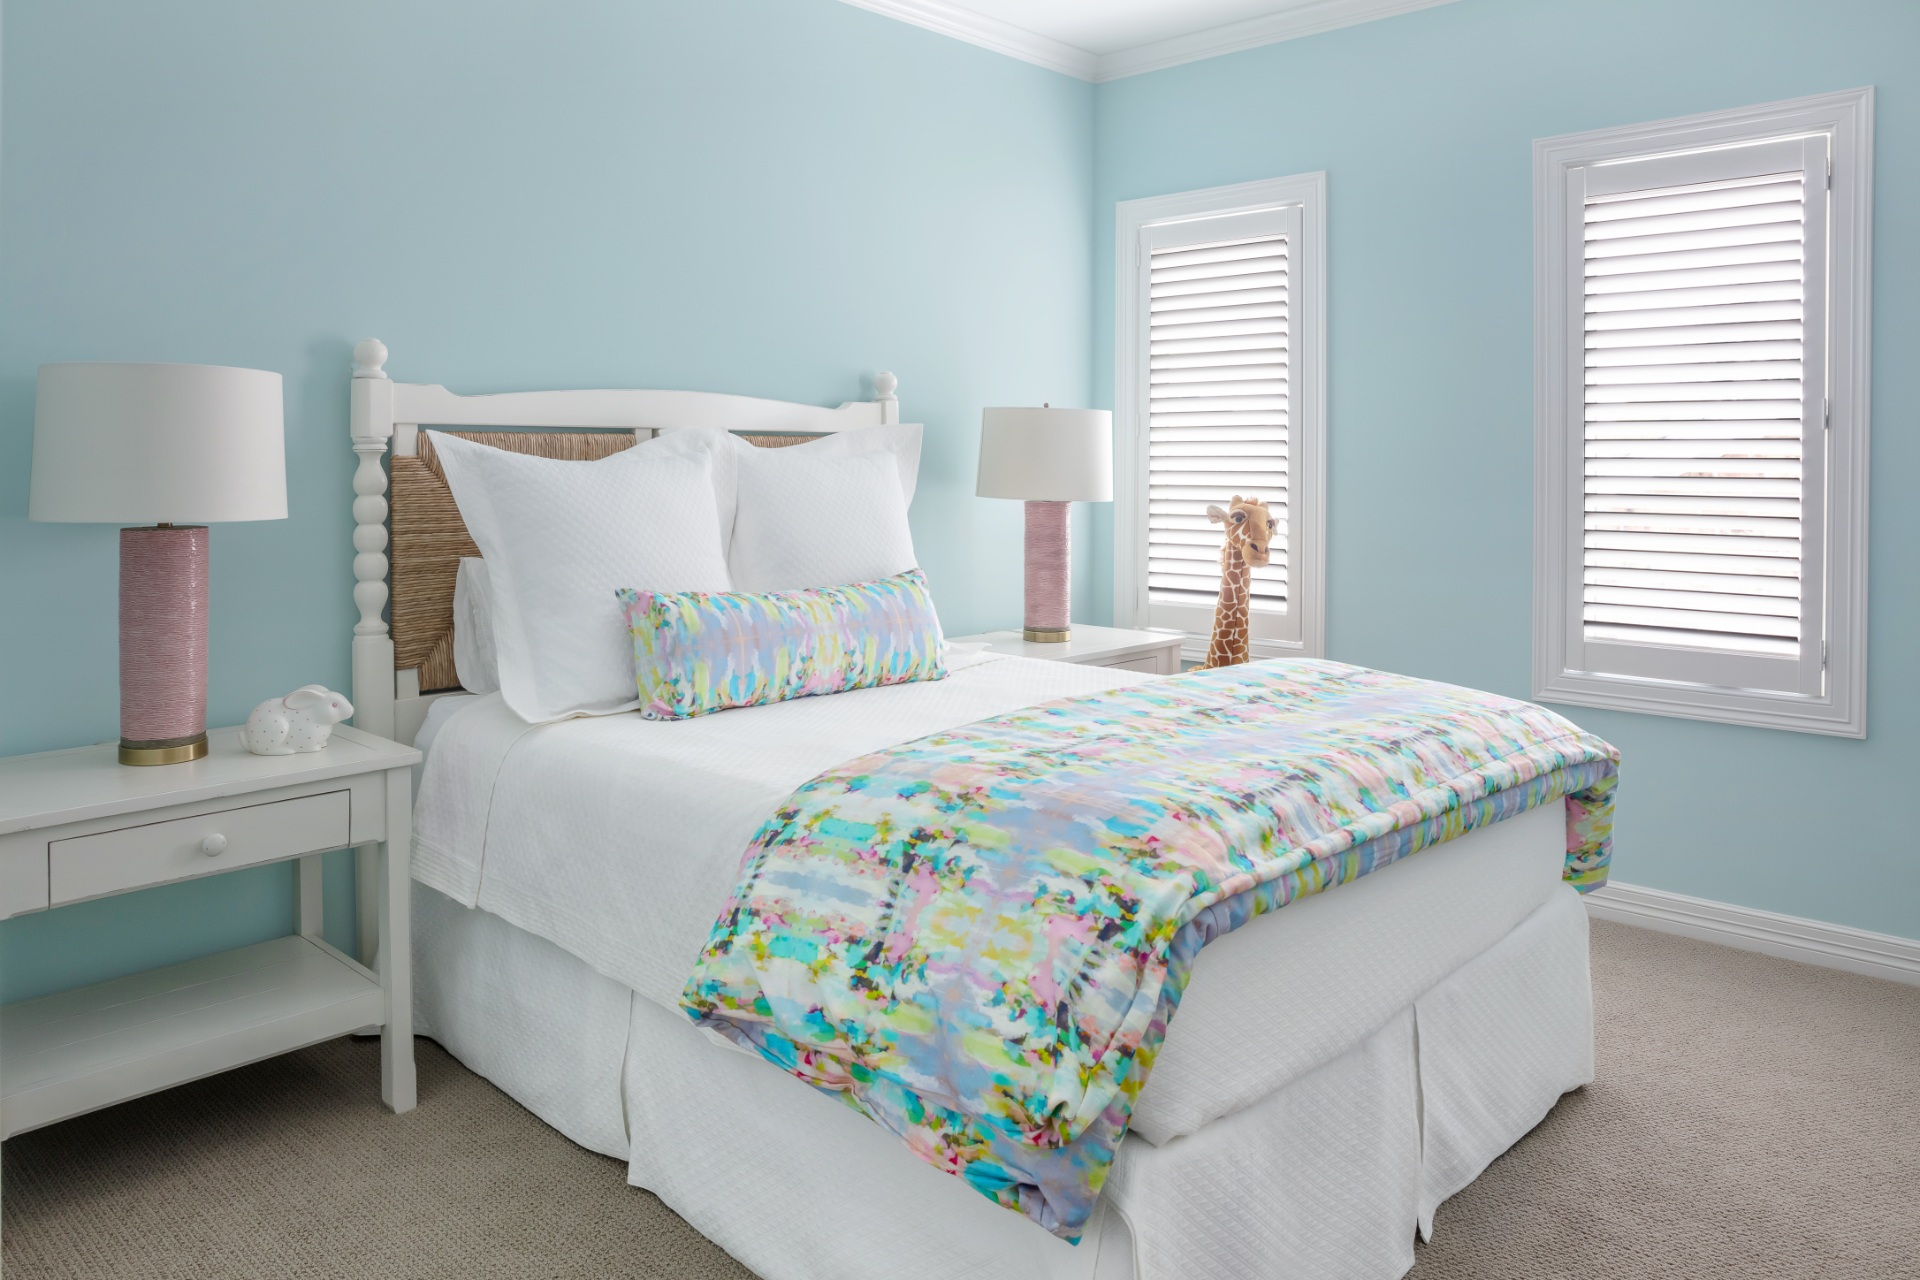 Ayrshire Transitional - Secondary Bedroom - BuildFBG